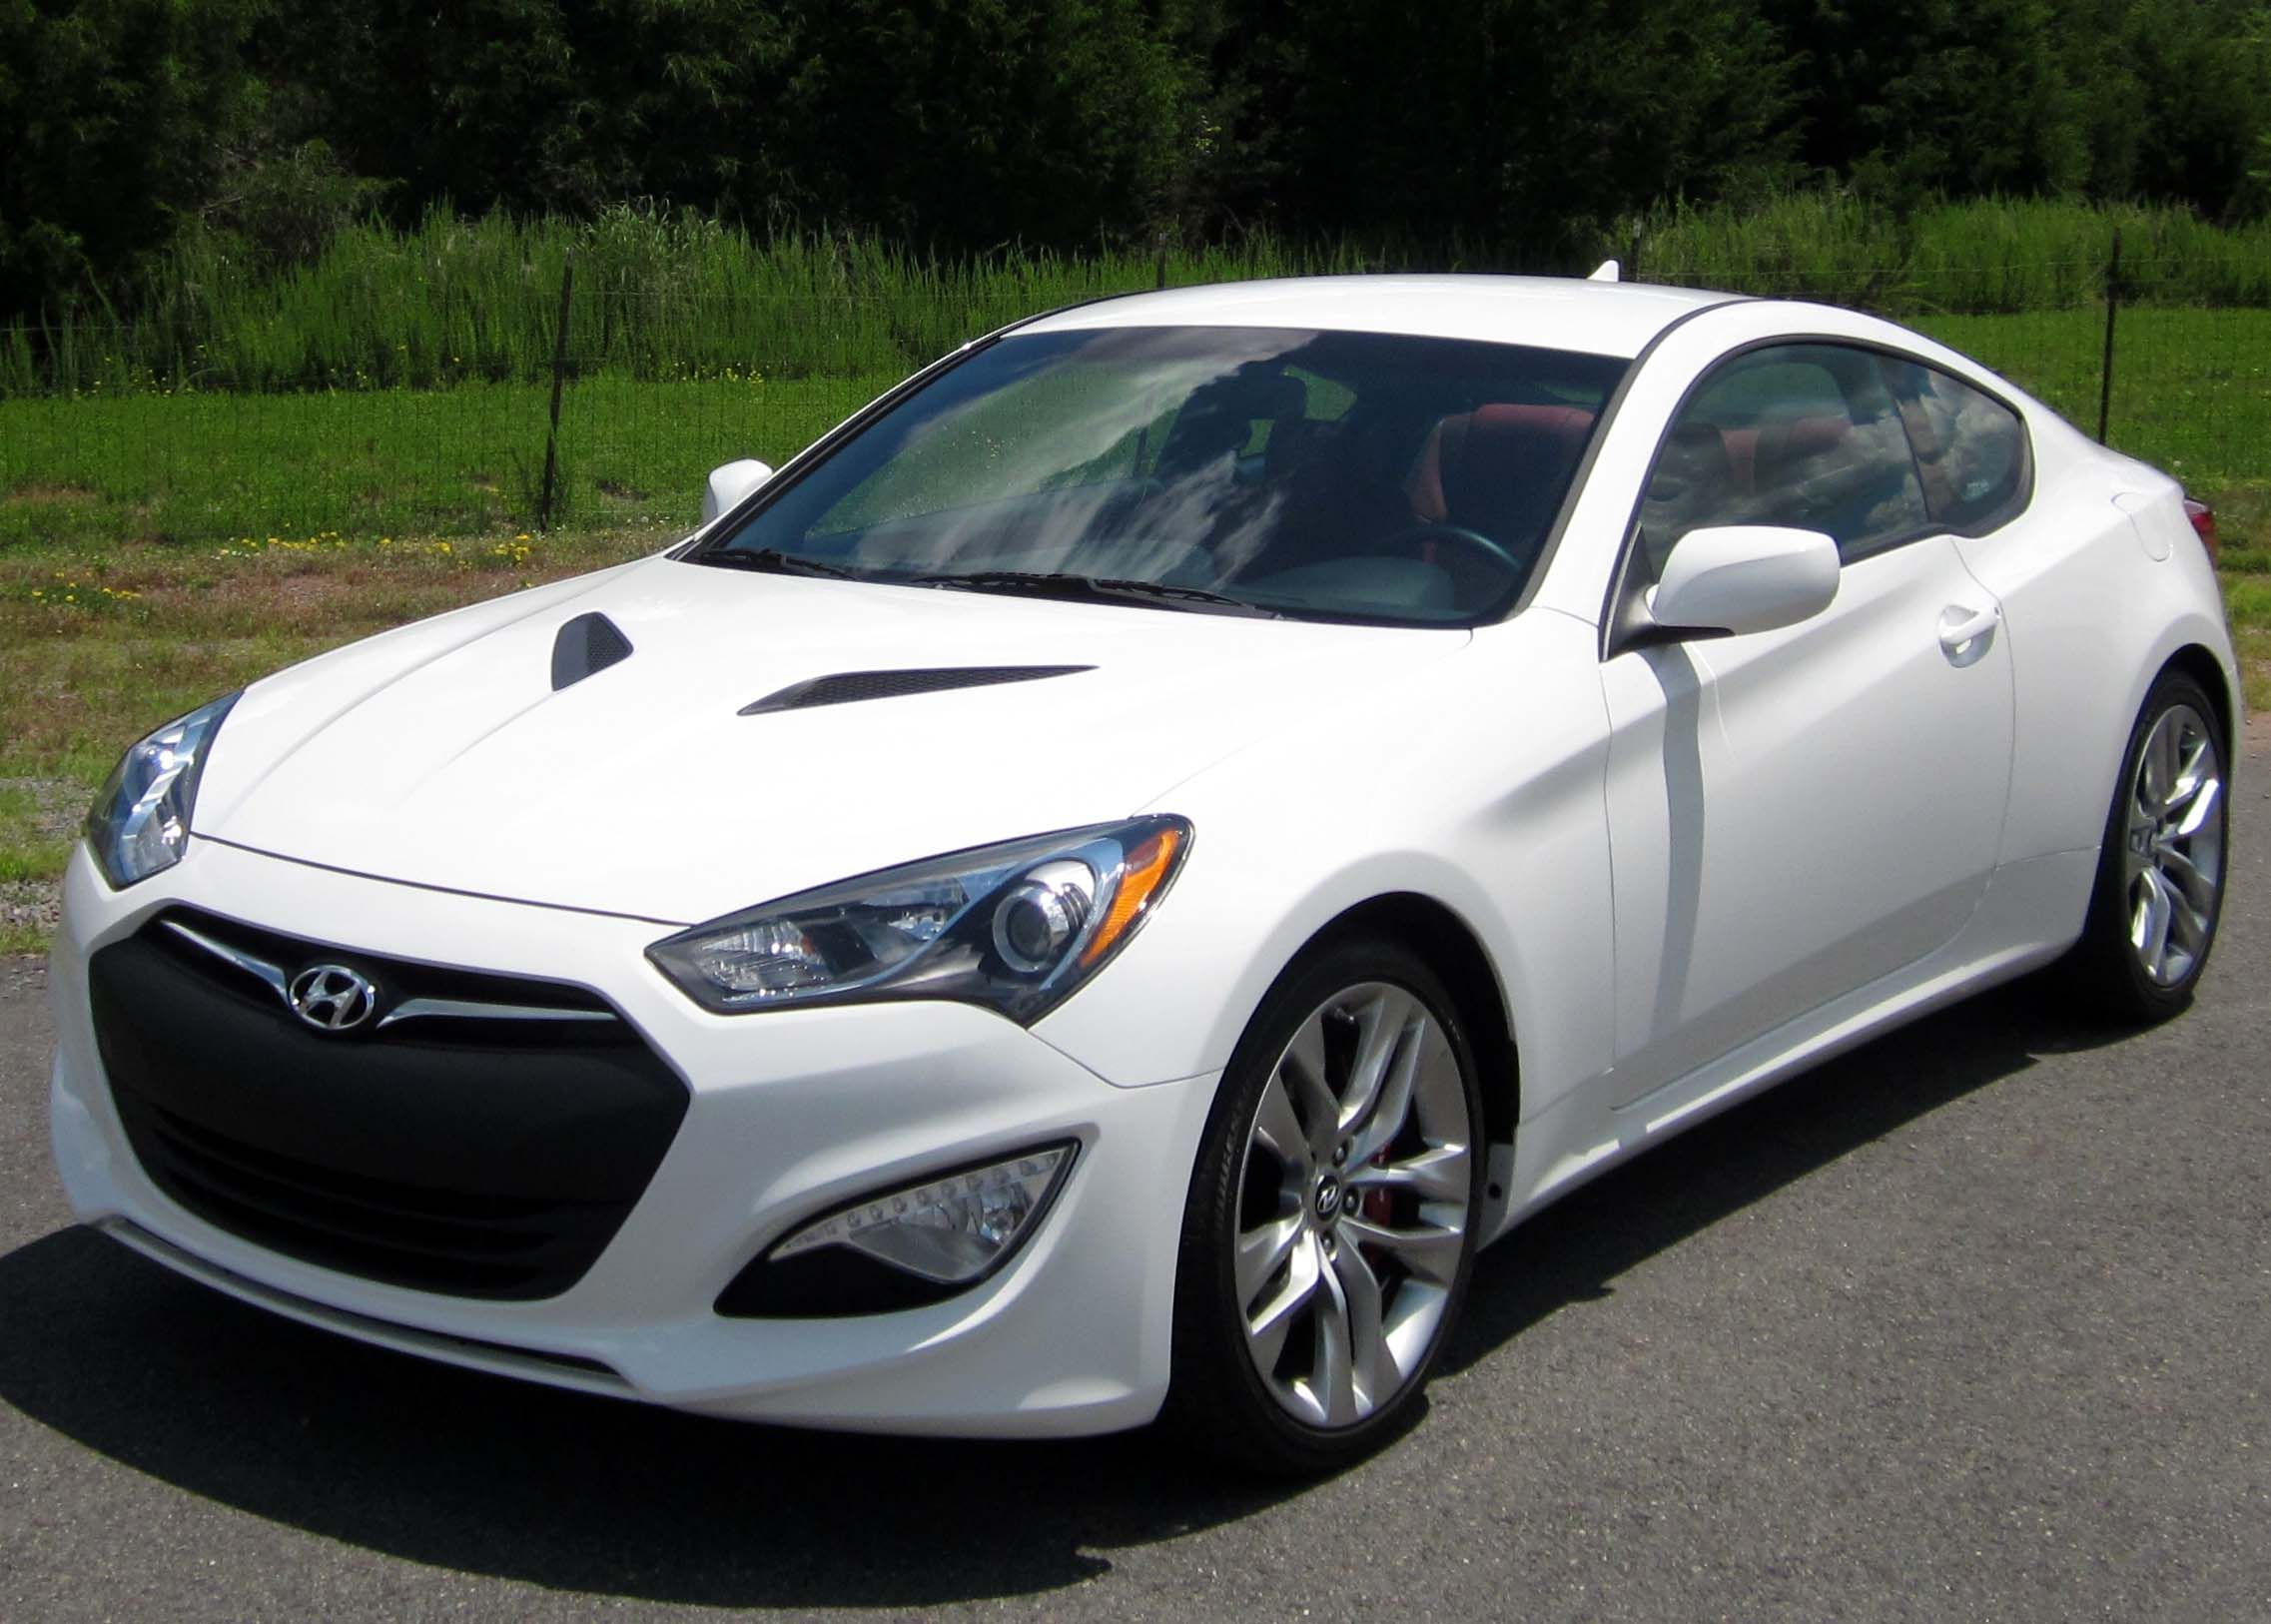 My future baby 2013 hyundai genesis coupe white with red interior